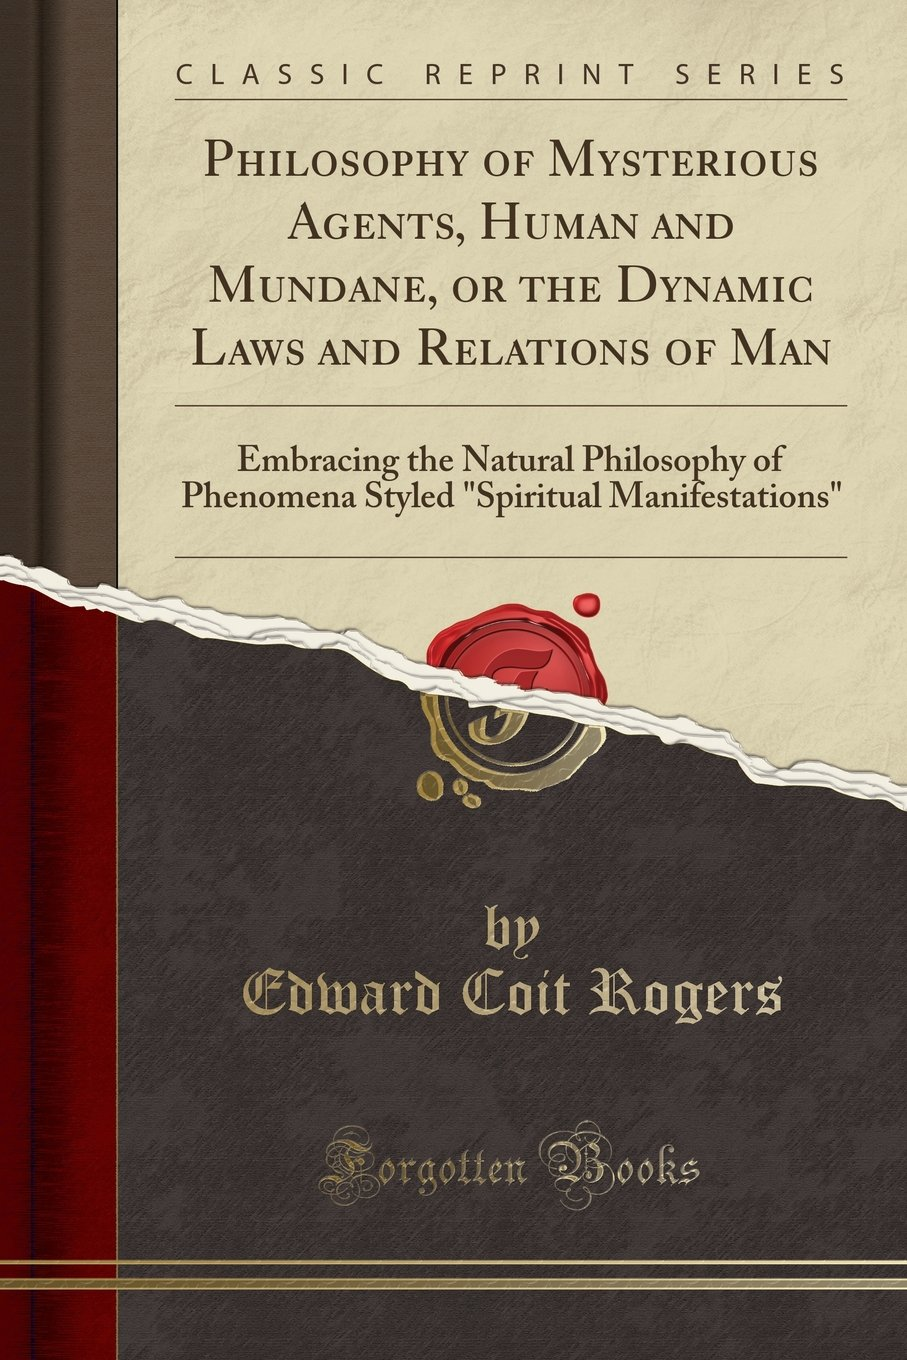 """Philosophy of Mysterious Agents, Human and Mundane, or the Dynamic Laws and Relations of Man: Embracing the Natural Philosophy of Phenomena Styled """"Spiritual Manifestations"""" (Classic Reprint) pdf epub"""